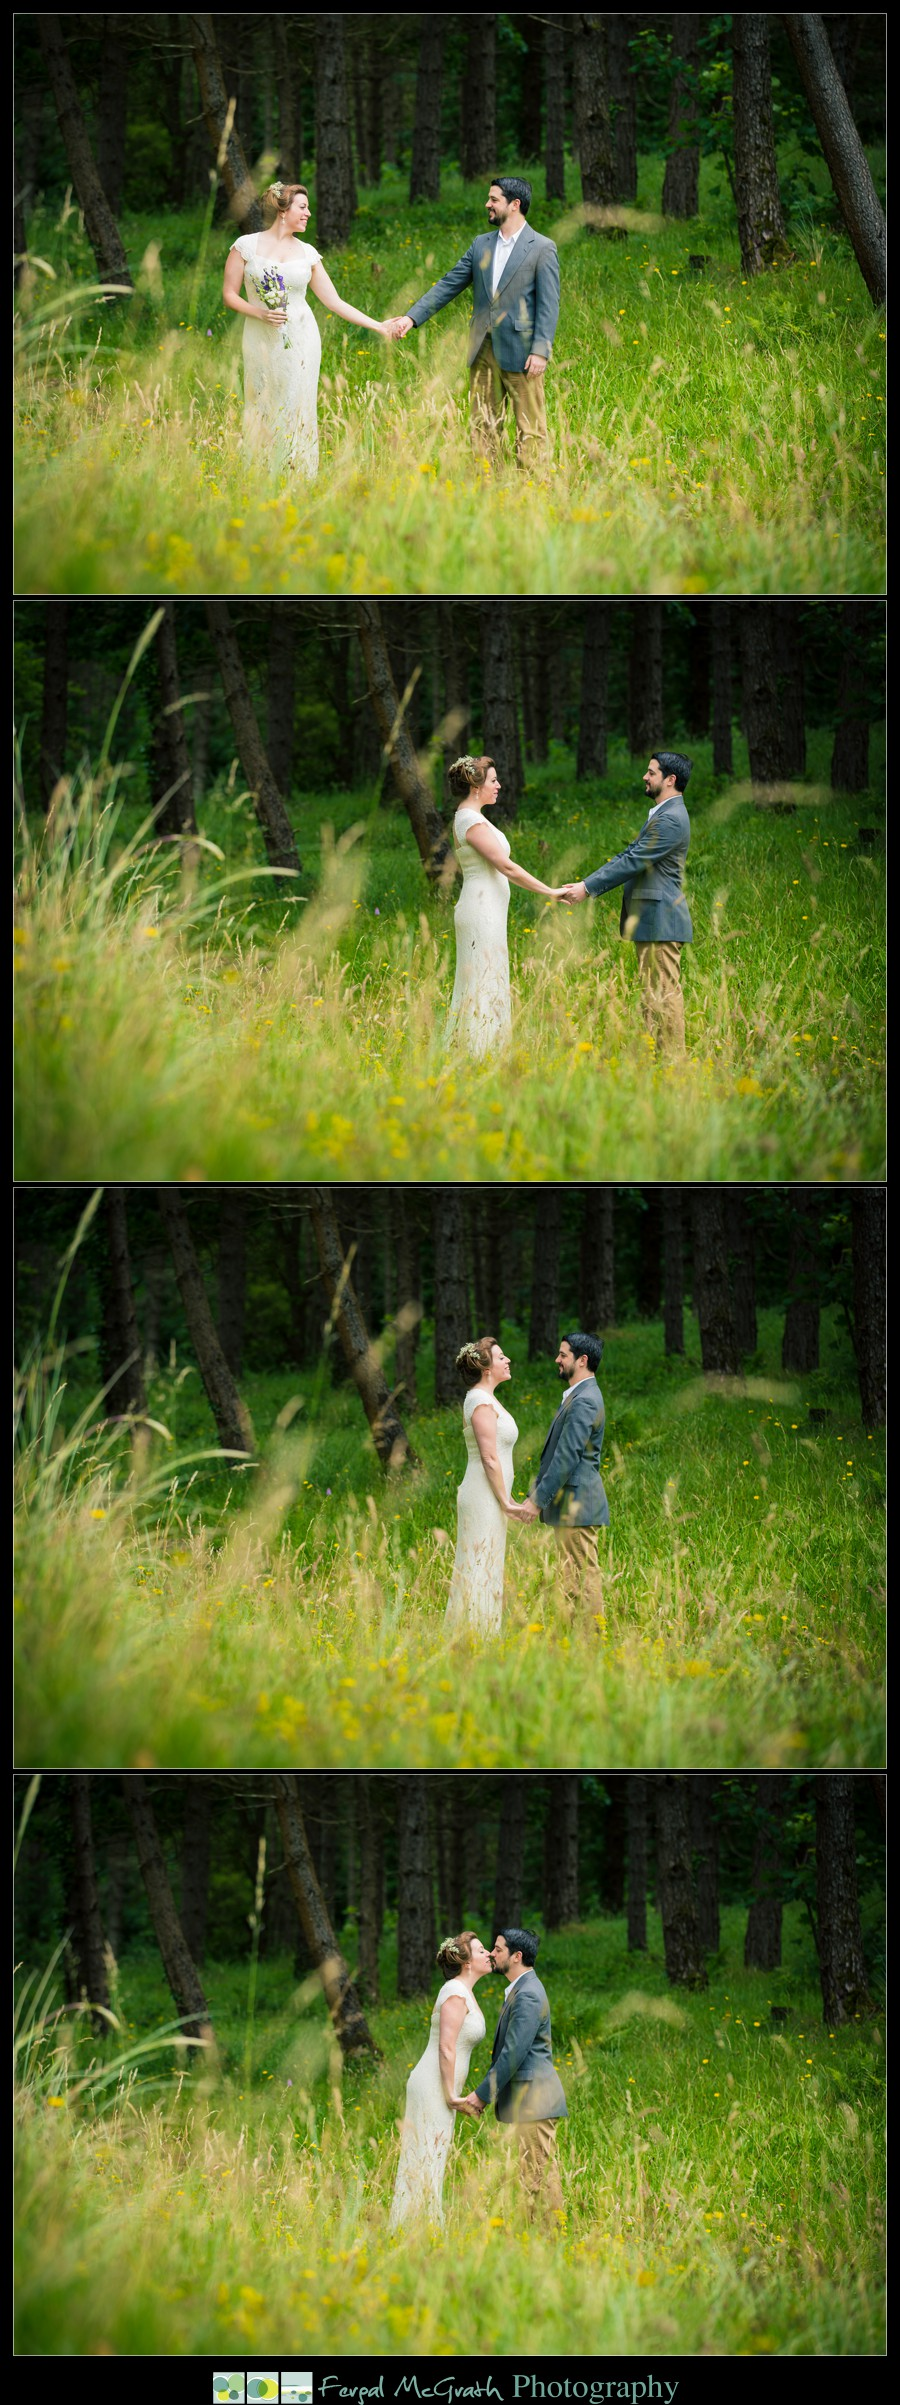 Donegal Wedding Photography bride and groom natural wedding photos in a wild meadow